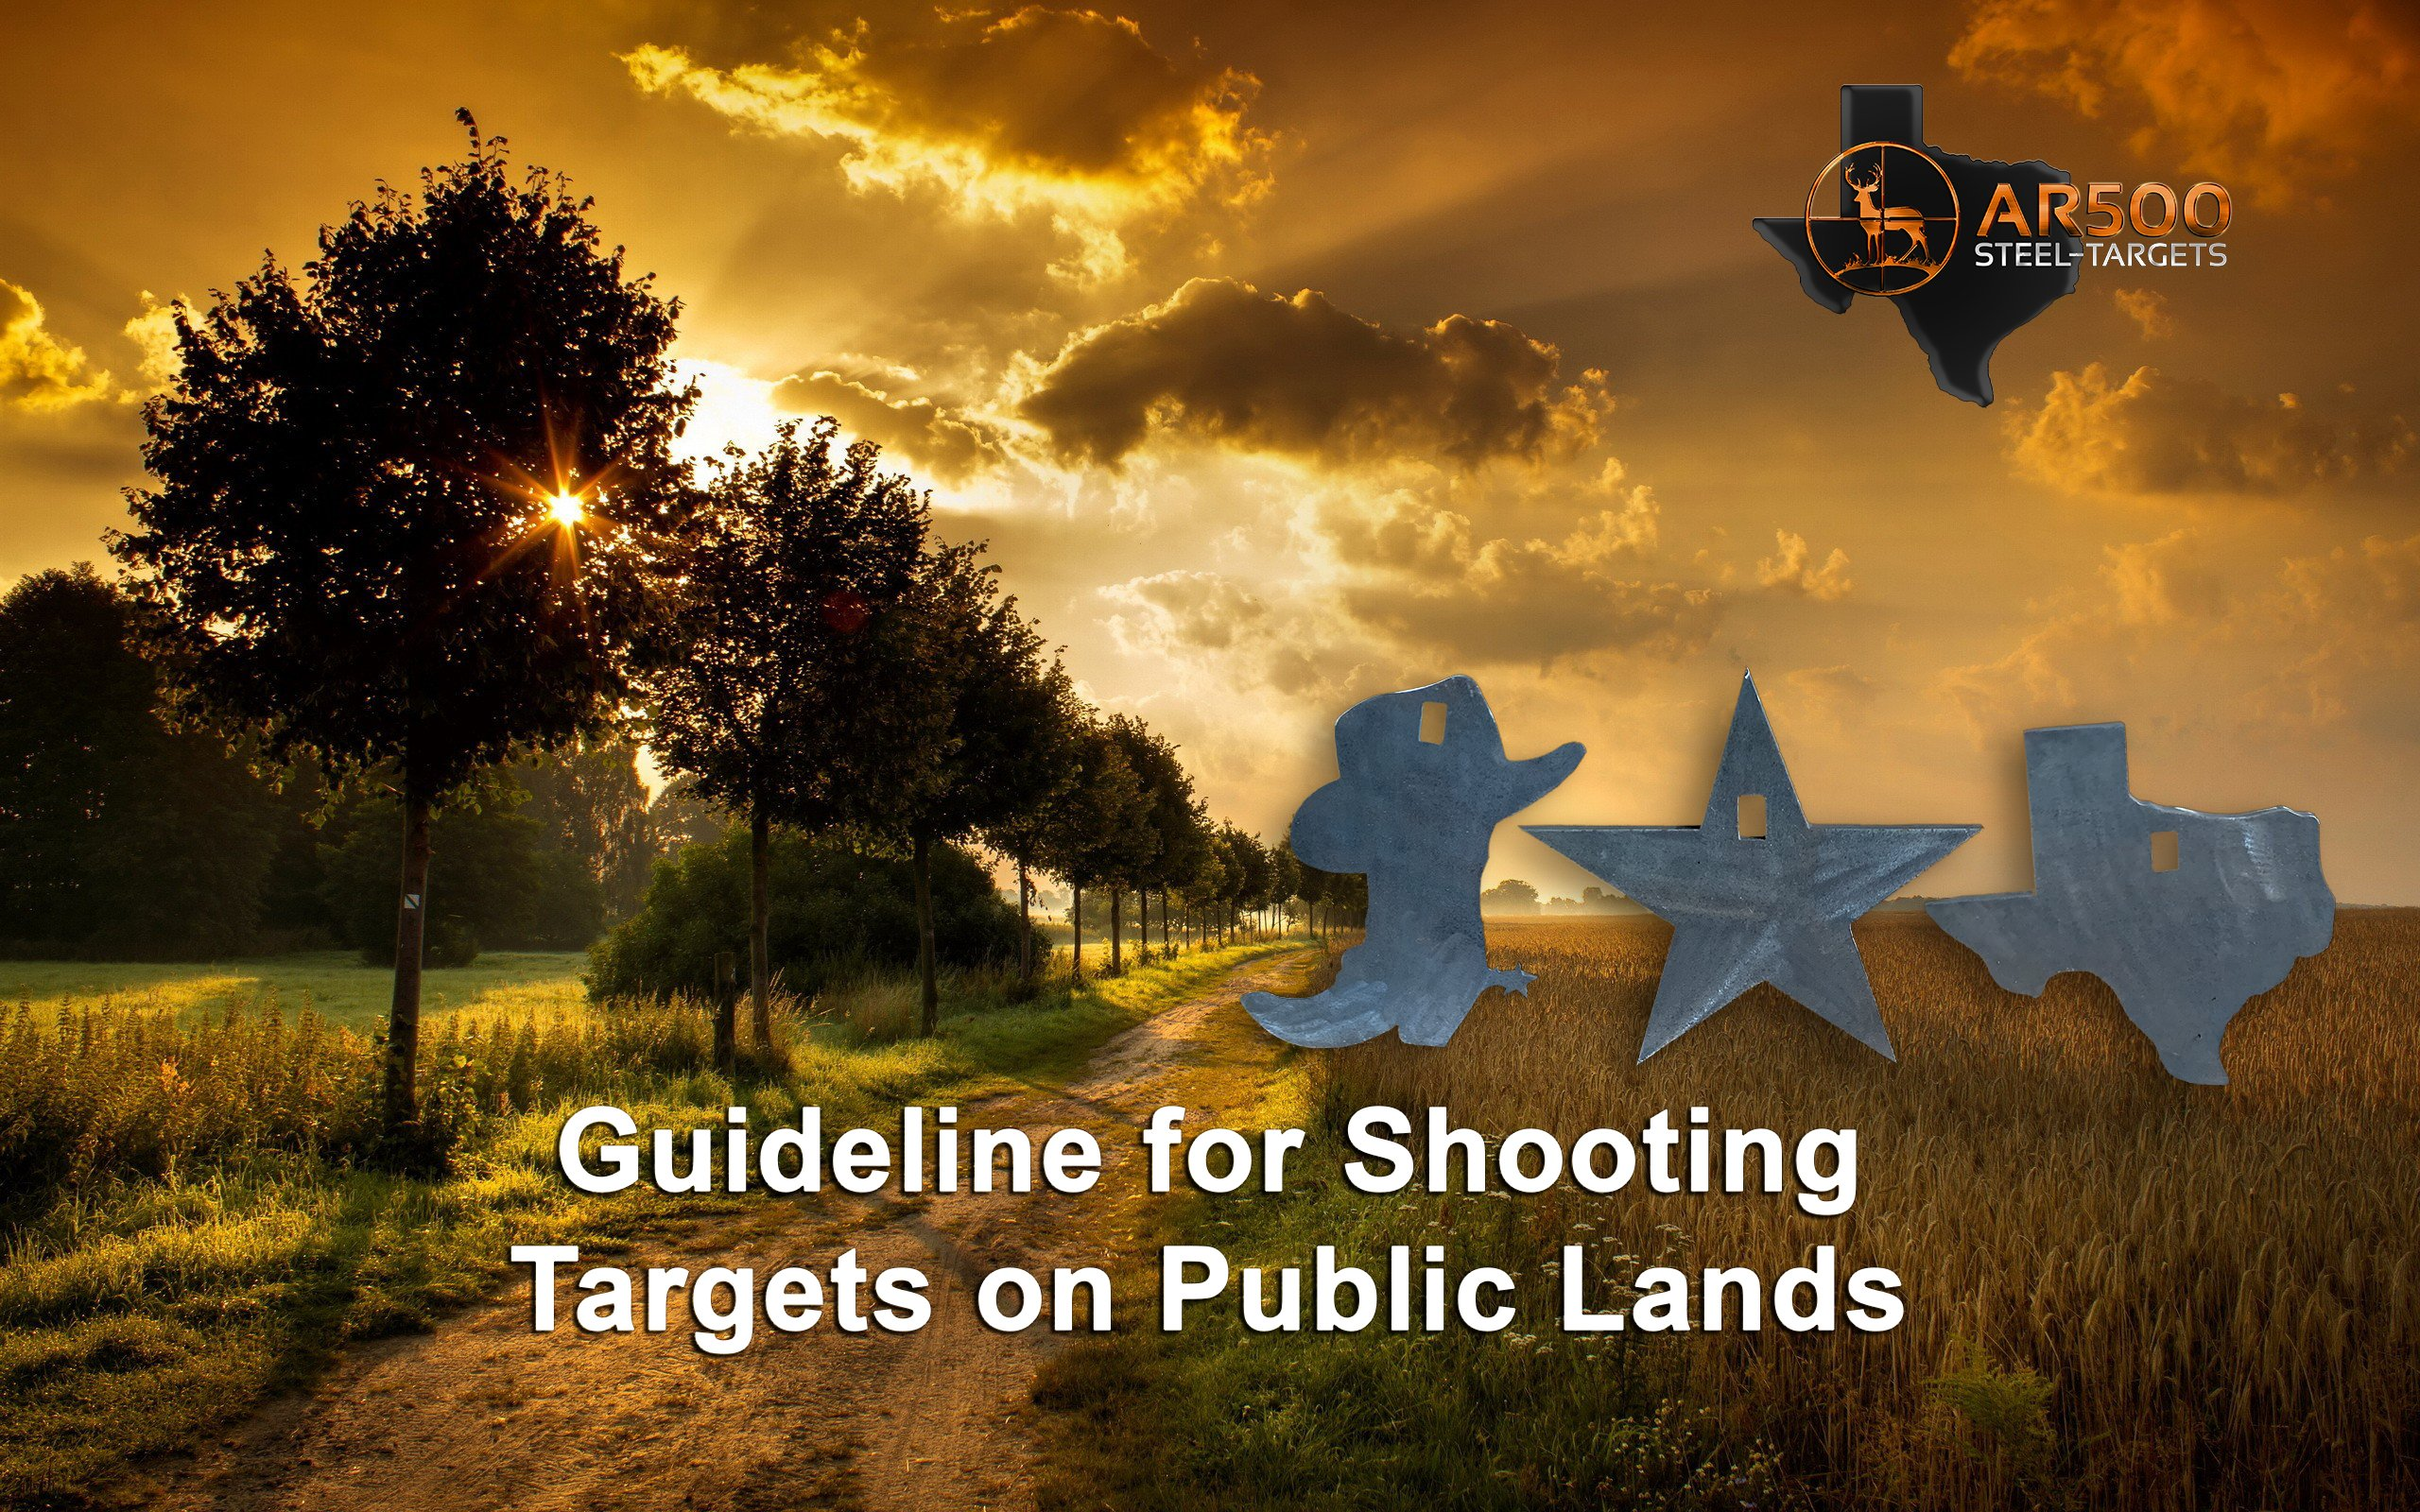 guidelines for shooting targets on public land